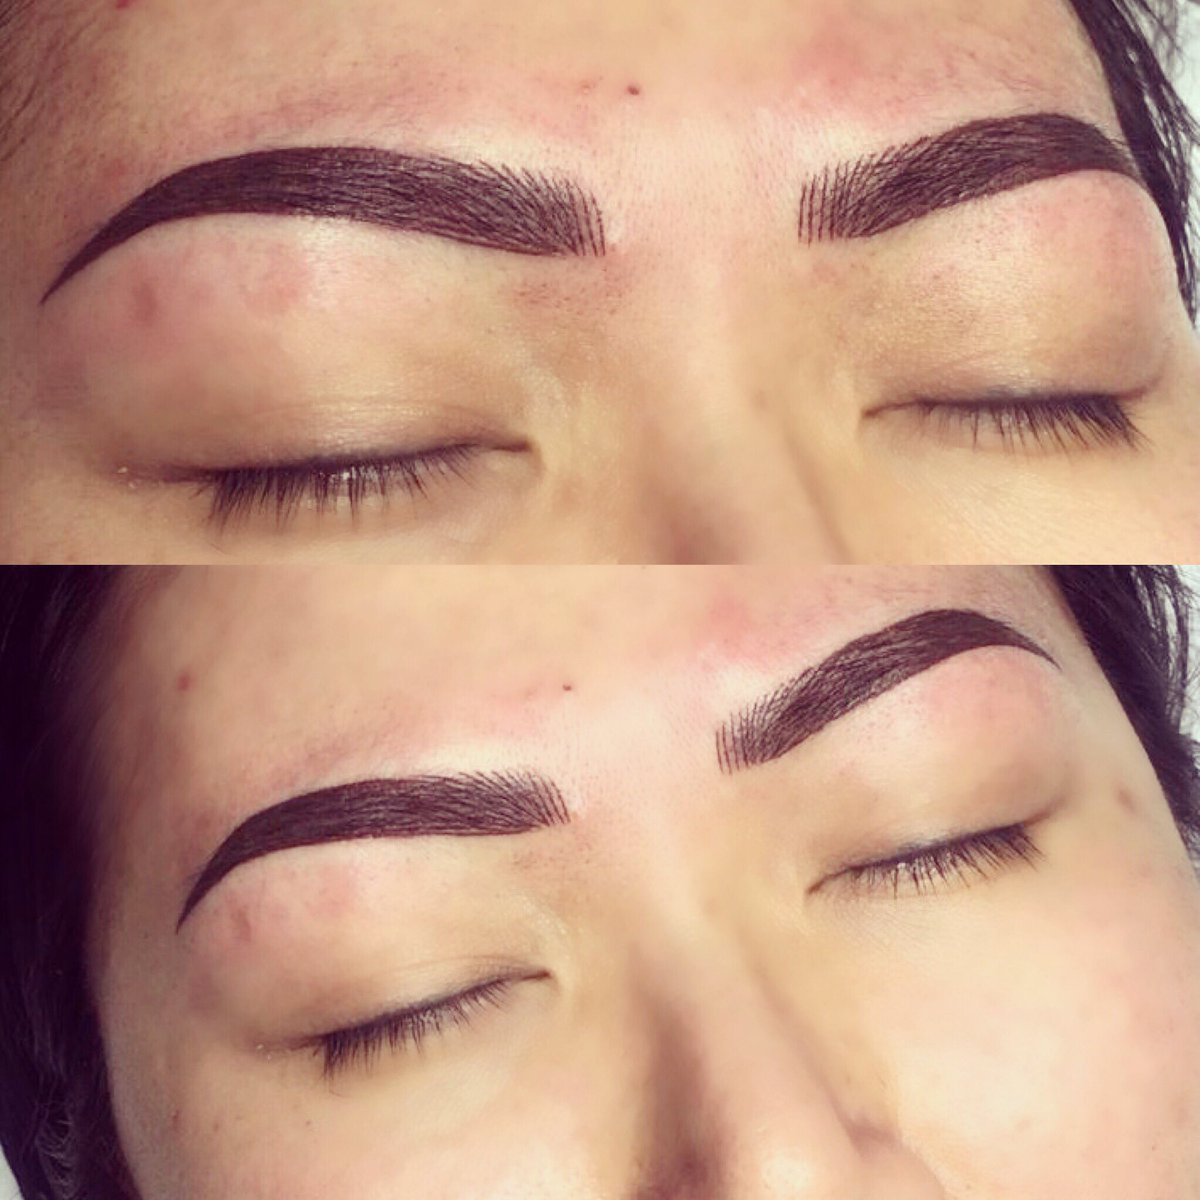 Victoria Adams On Twitter A Powder And Hairstroke Combination Brow